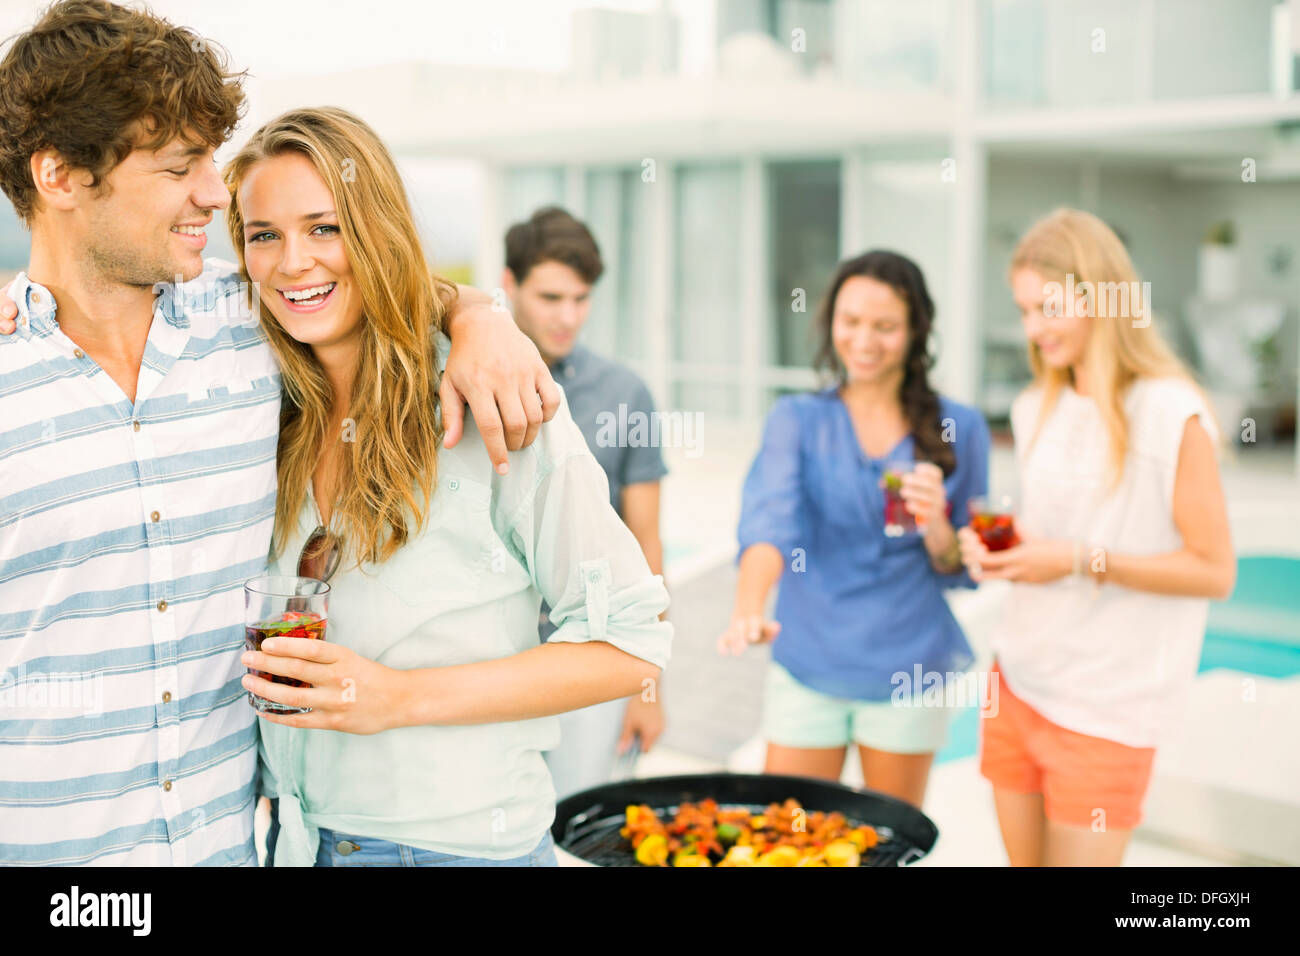 Couple hugging at barbecue - Stock Image